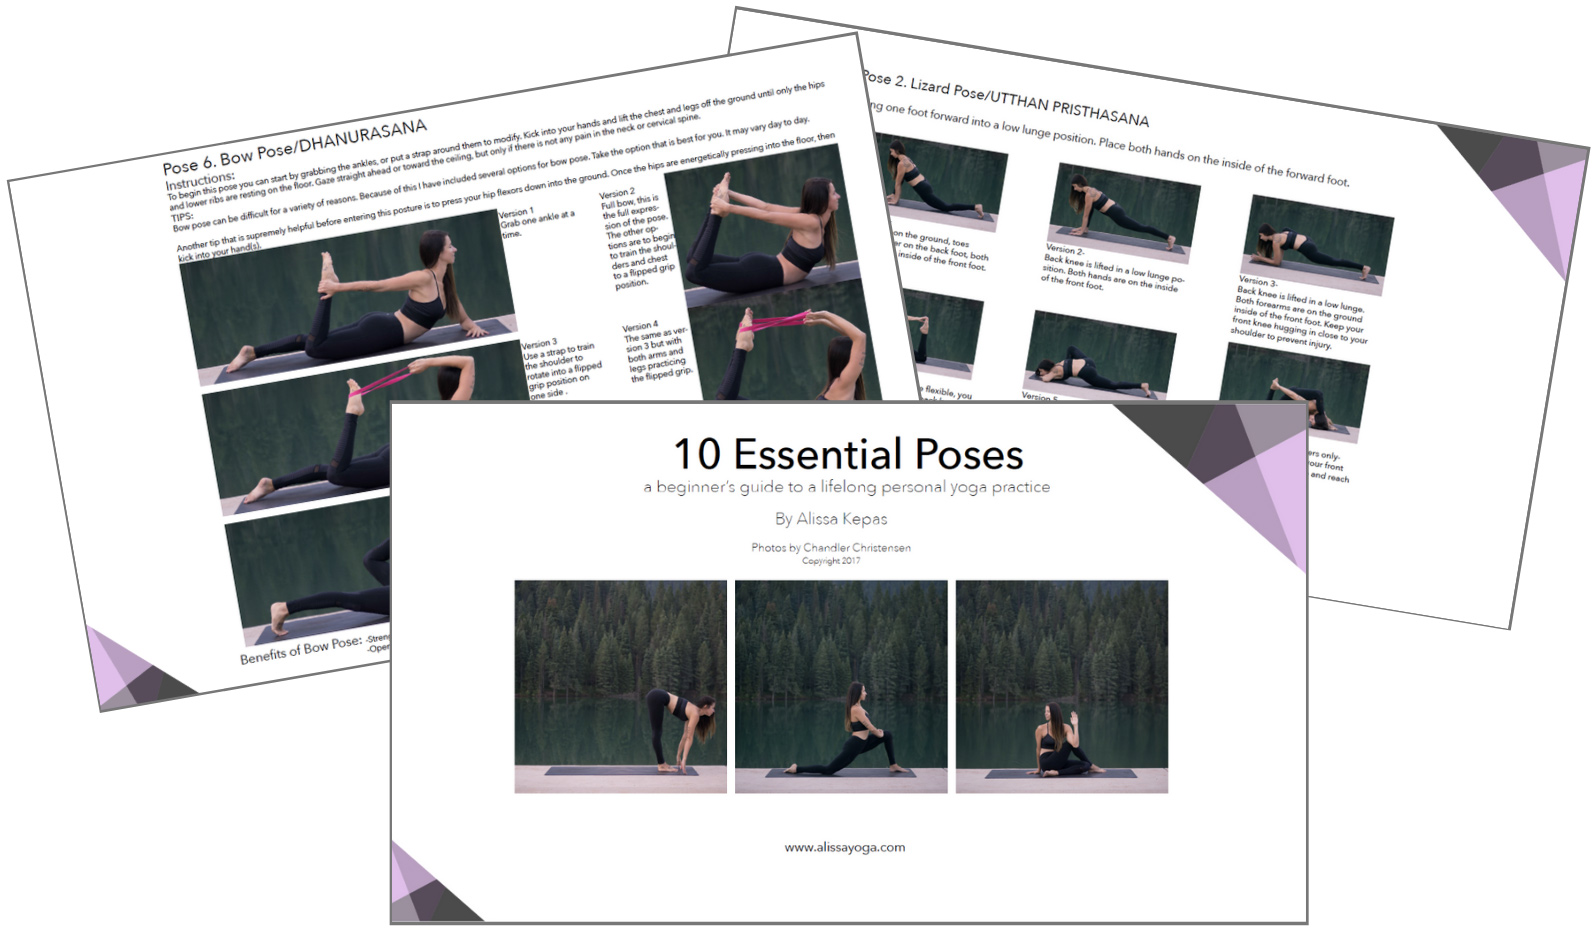 10-essential-poses-fan-pages.jpg